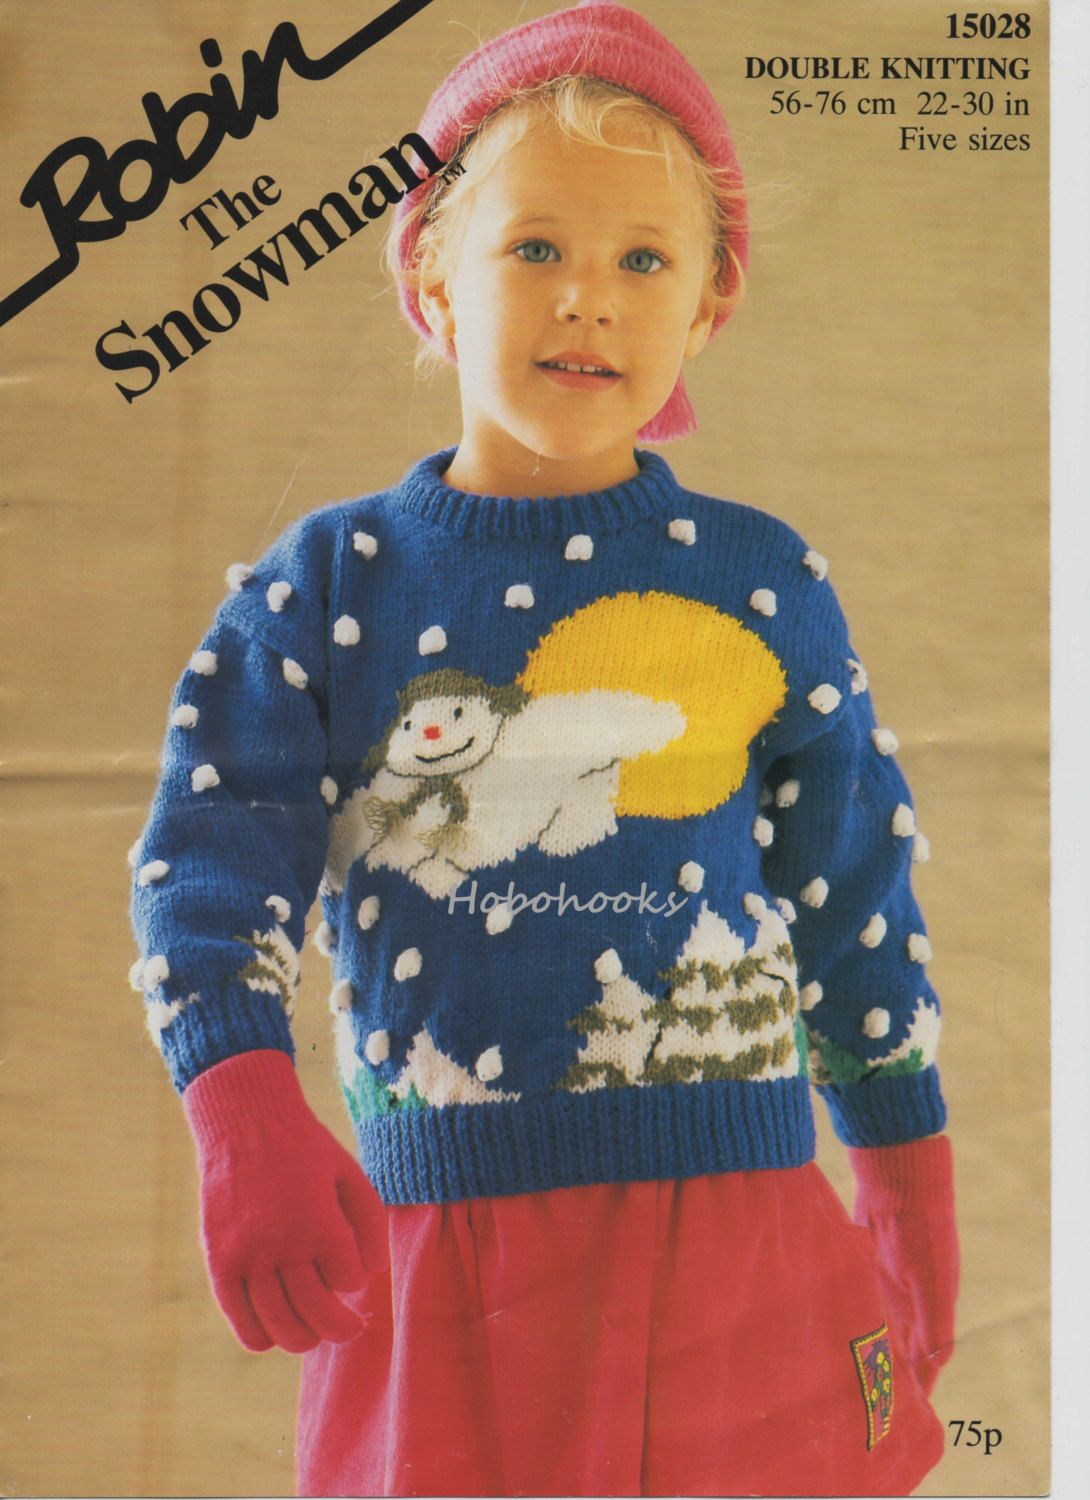 childrens knitting pattern pdf download childrens sweater knitting pattern sn...